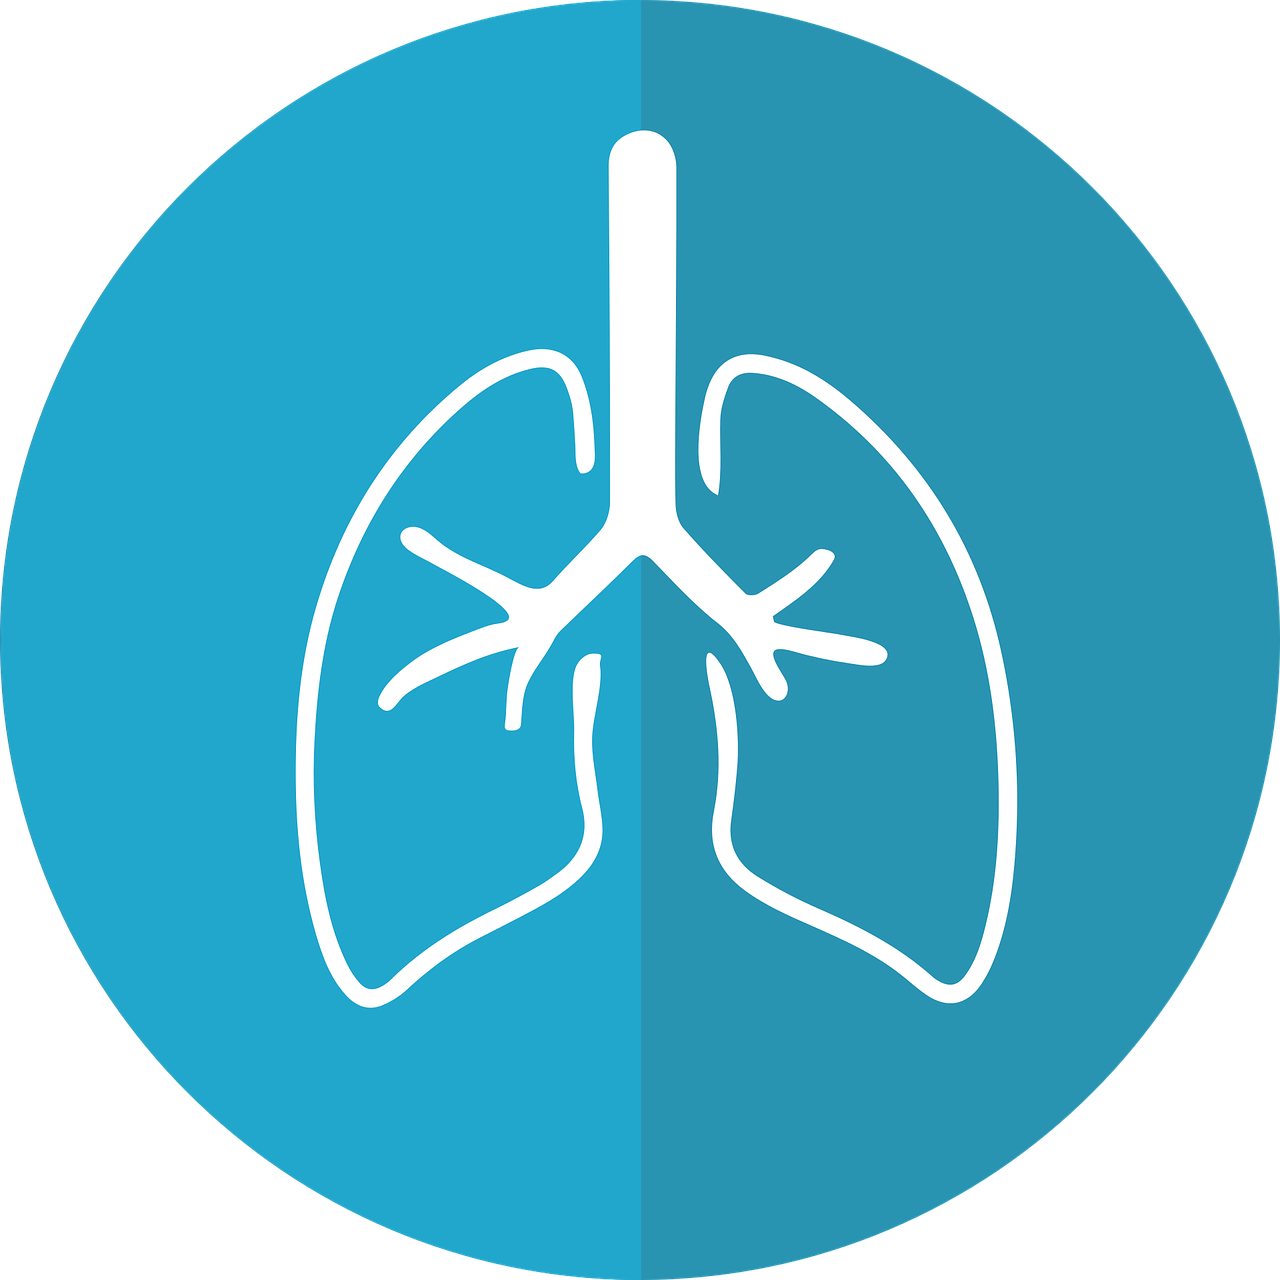 Joint Fellowship Award for the Study of Lung Cancer